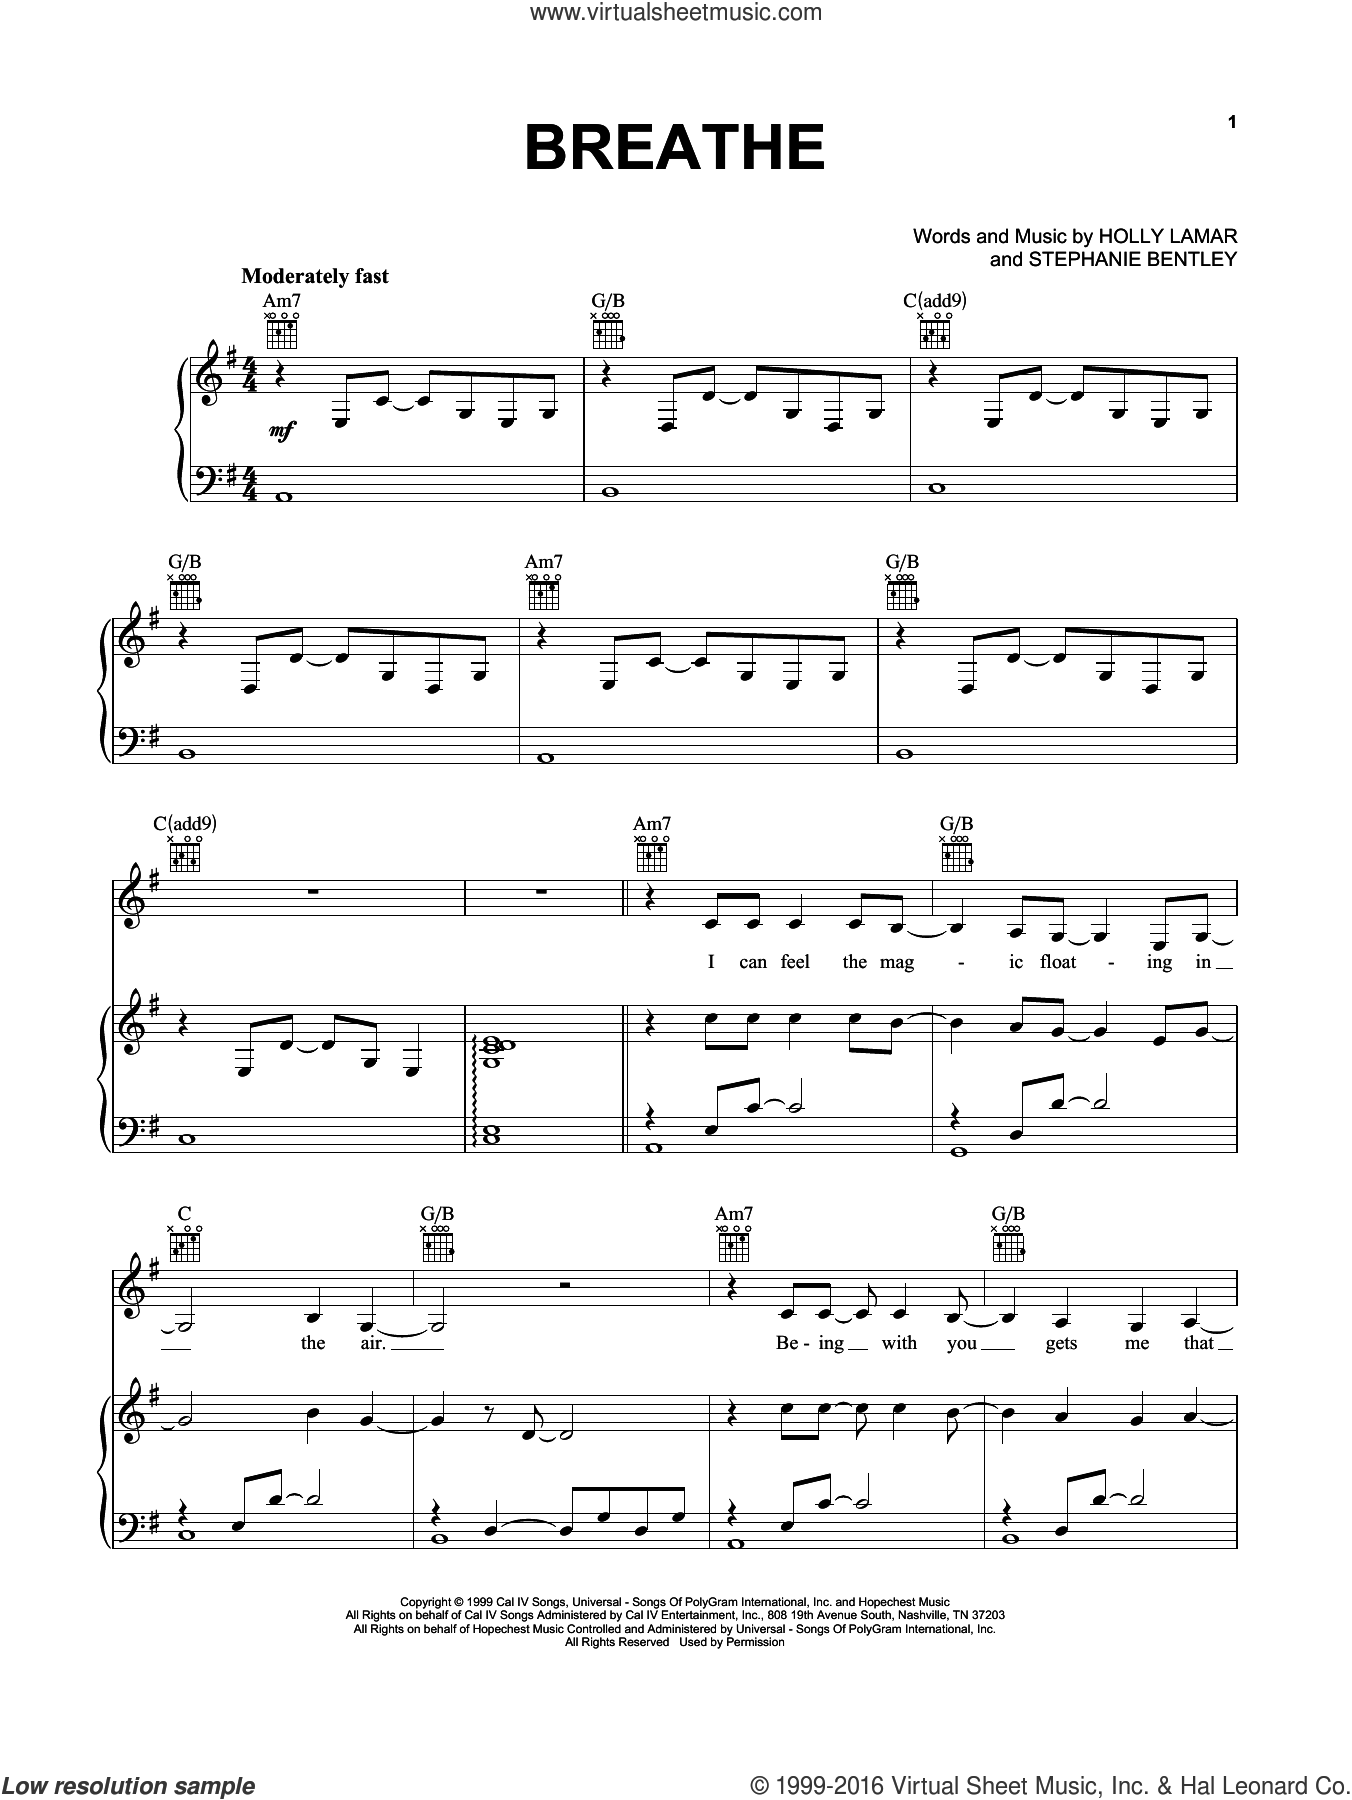 Breathe sheet music for voice, piano or guitar by Faith Hill, Holly Lamar and Stephanie Bentley, intermediate skill level